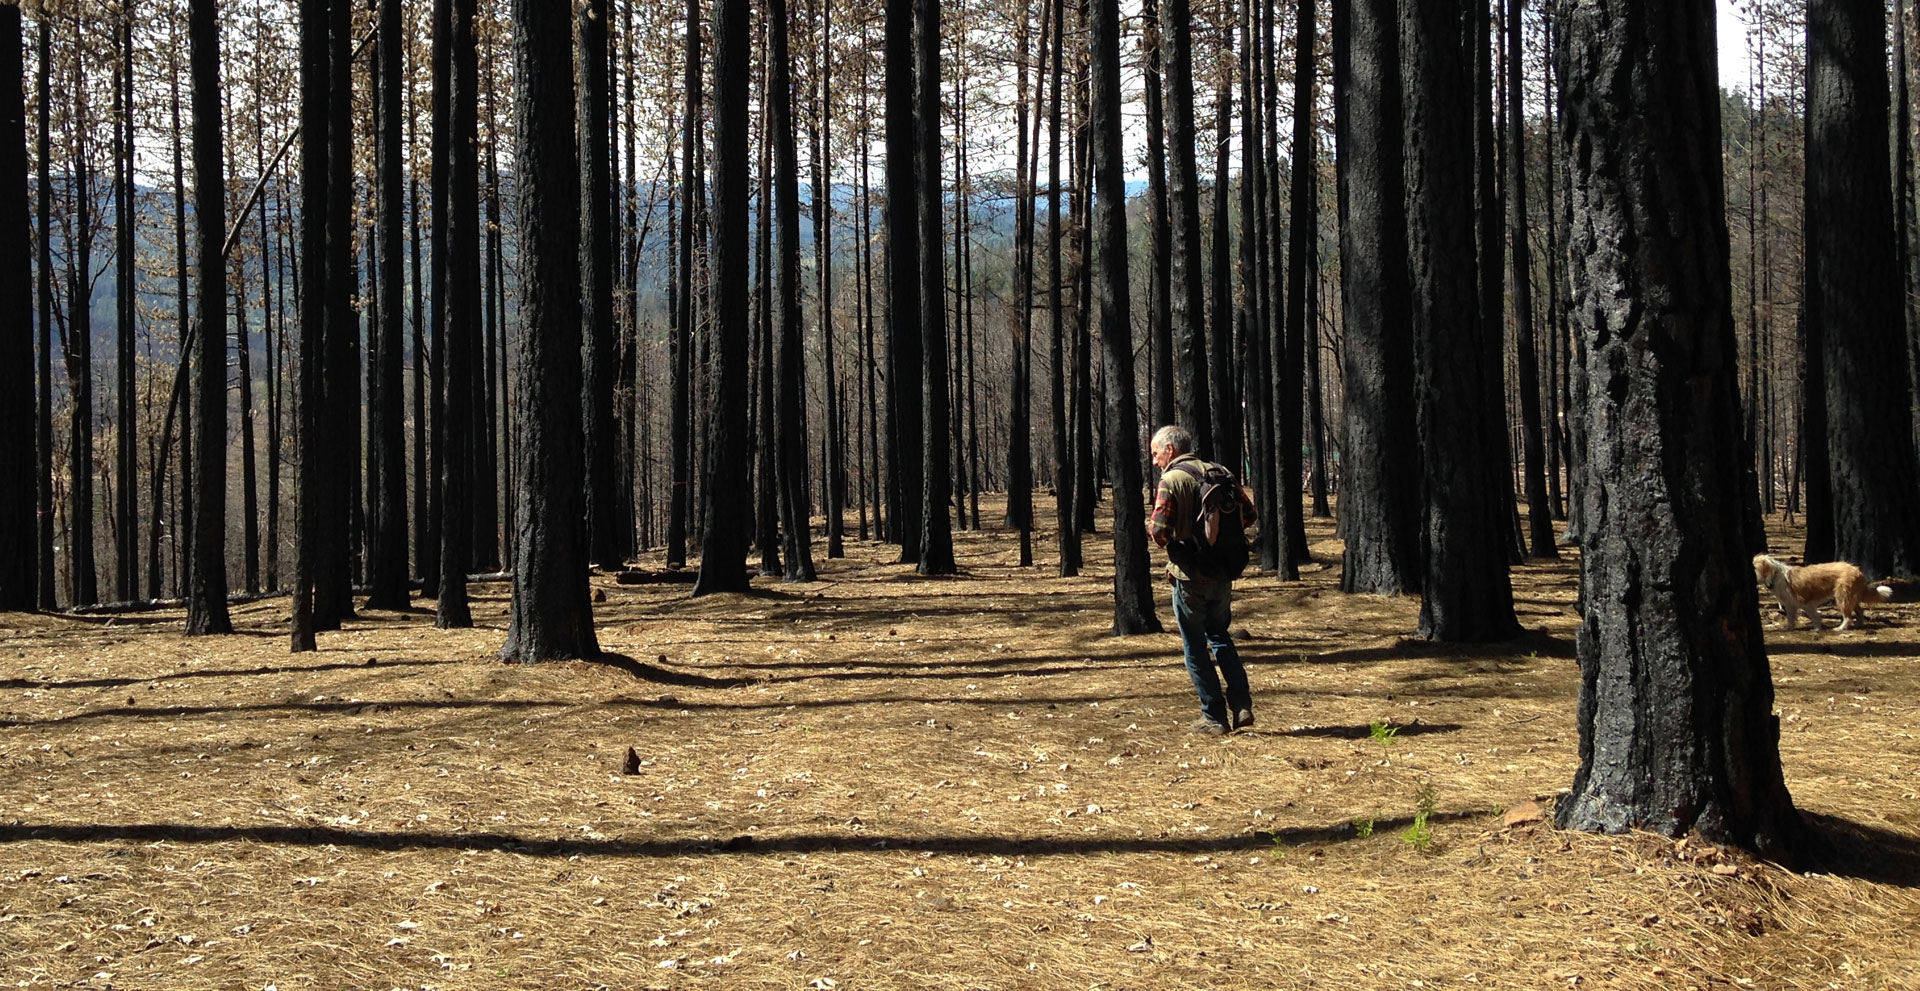 Kevin Sadlier hunts for morels in the Lake County forest burned by the Valley Fire.